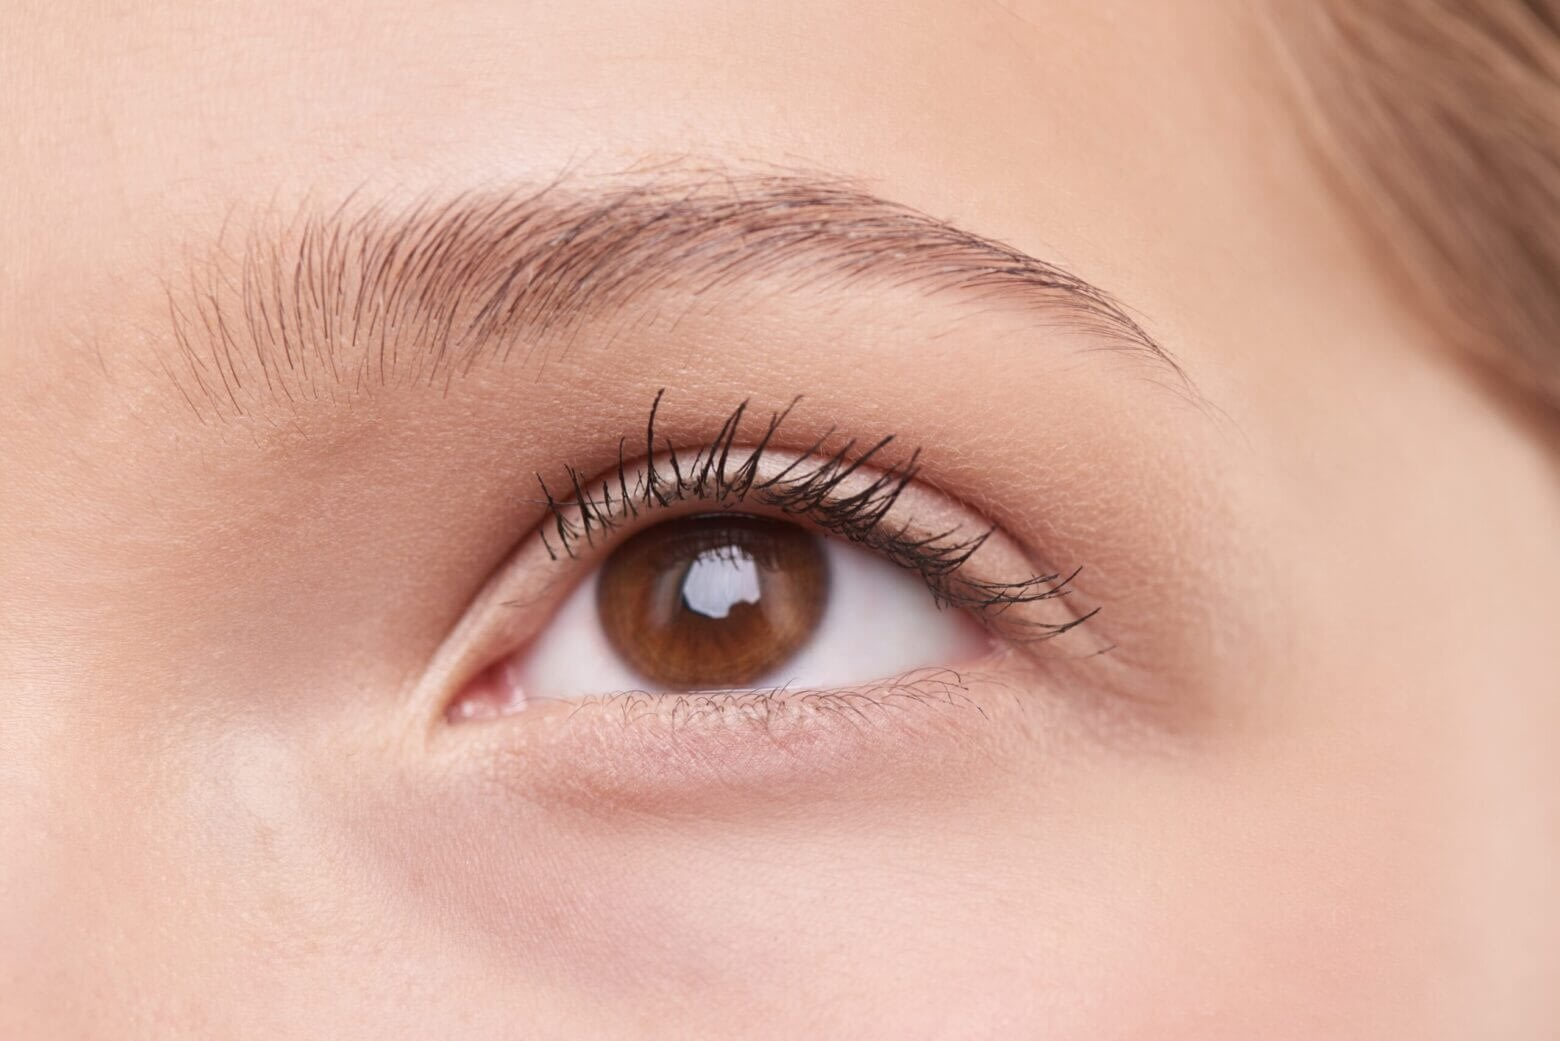 How To Make Your Eyelashes Grow Overnight With Natural Oils